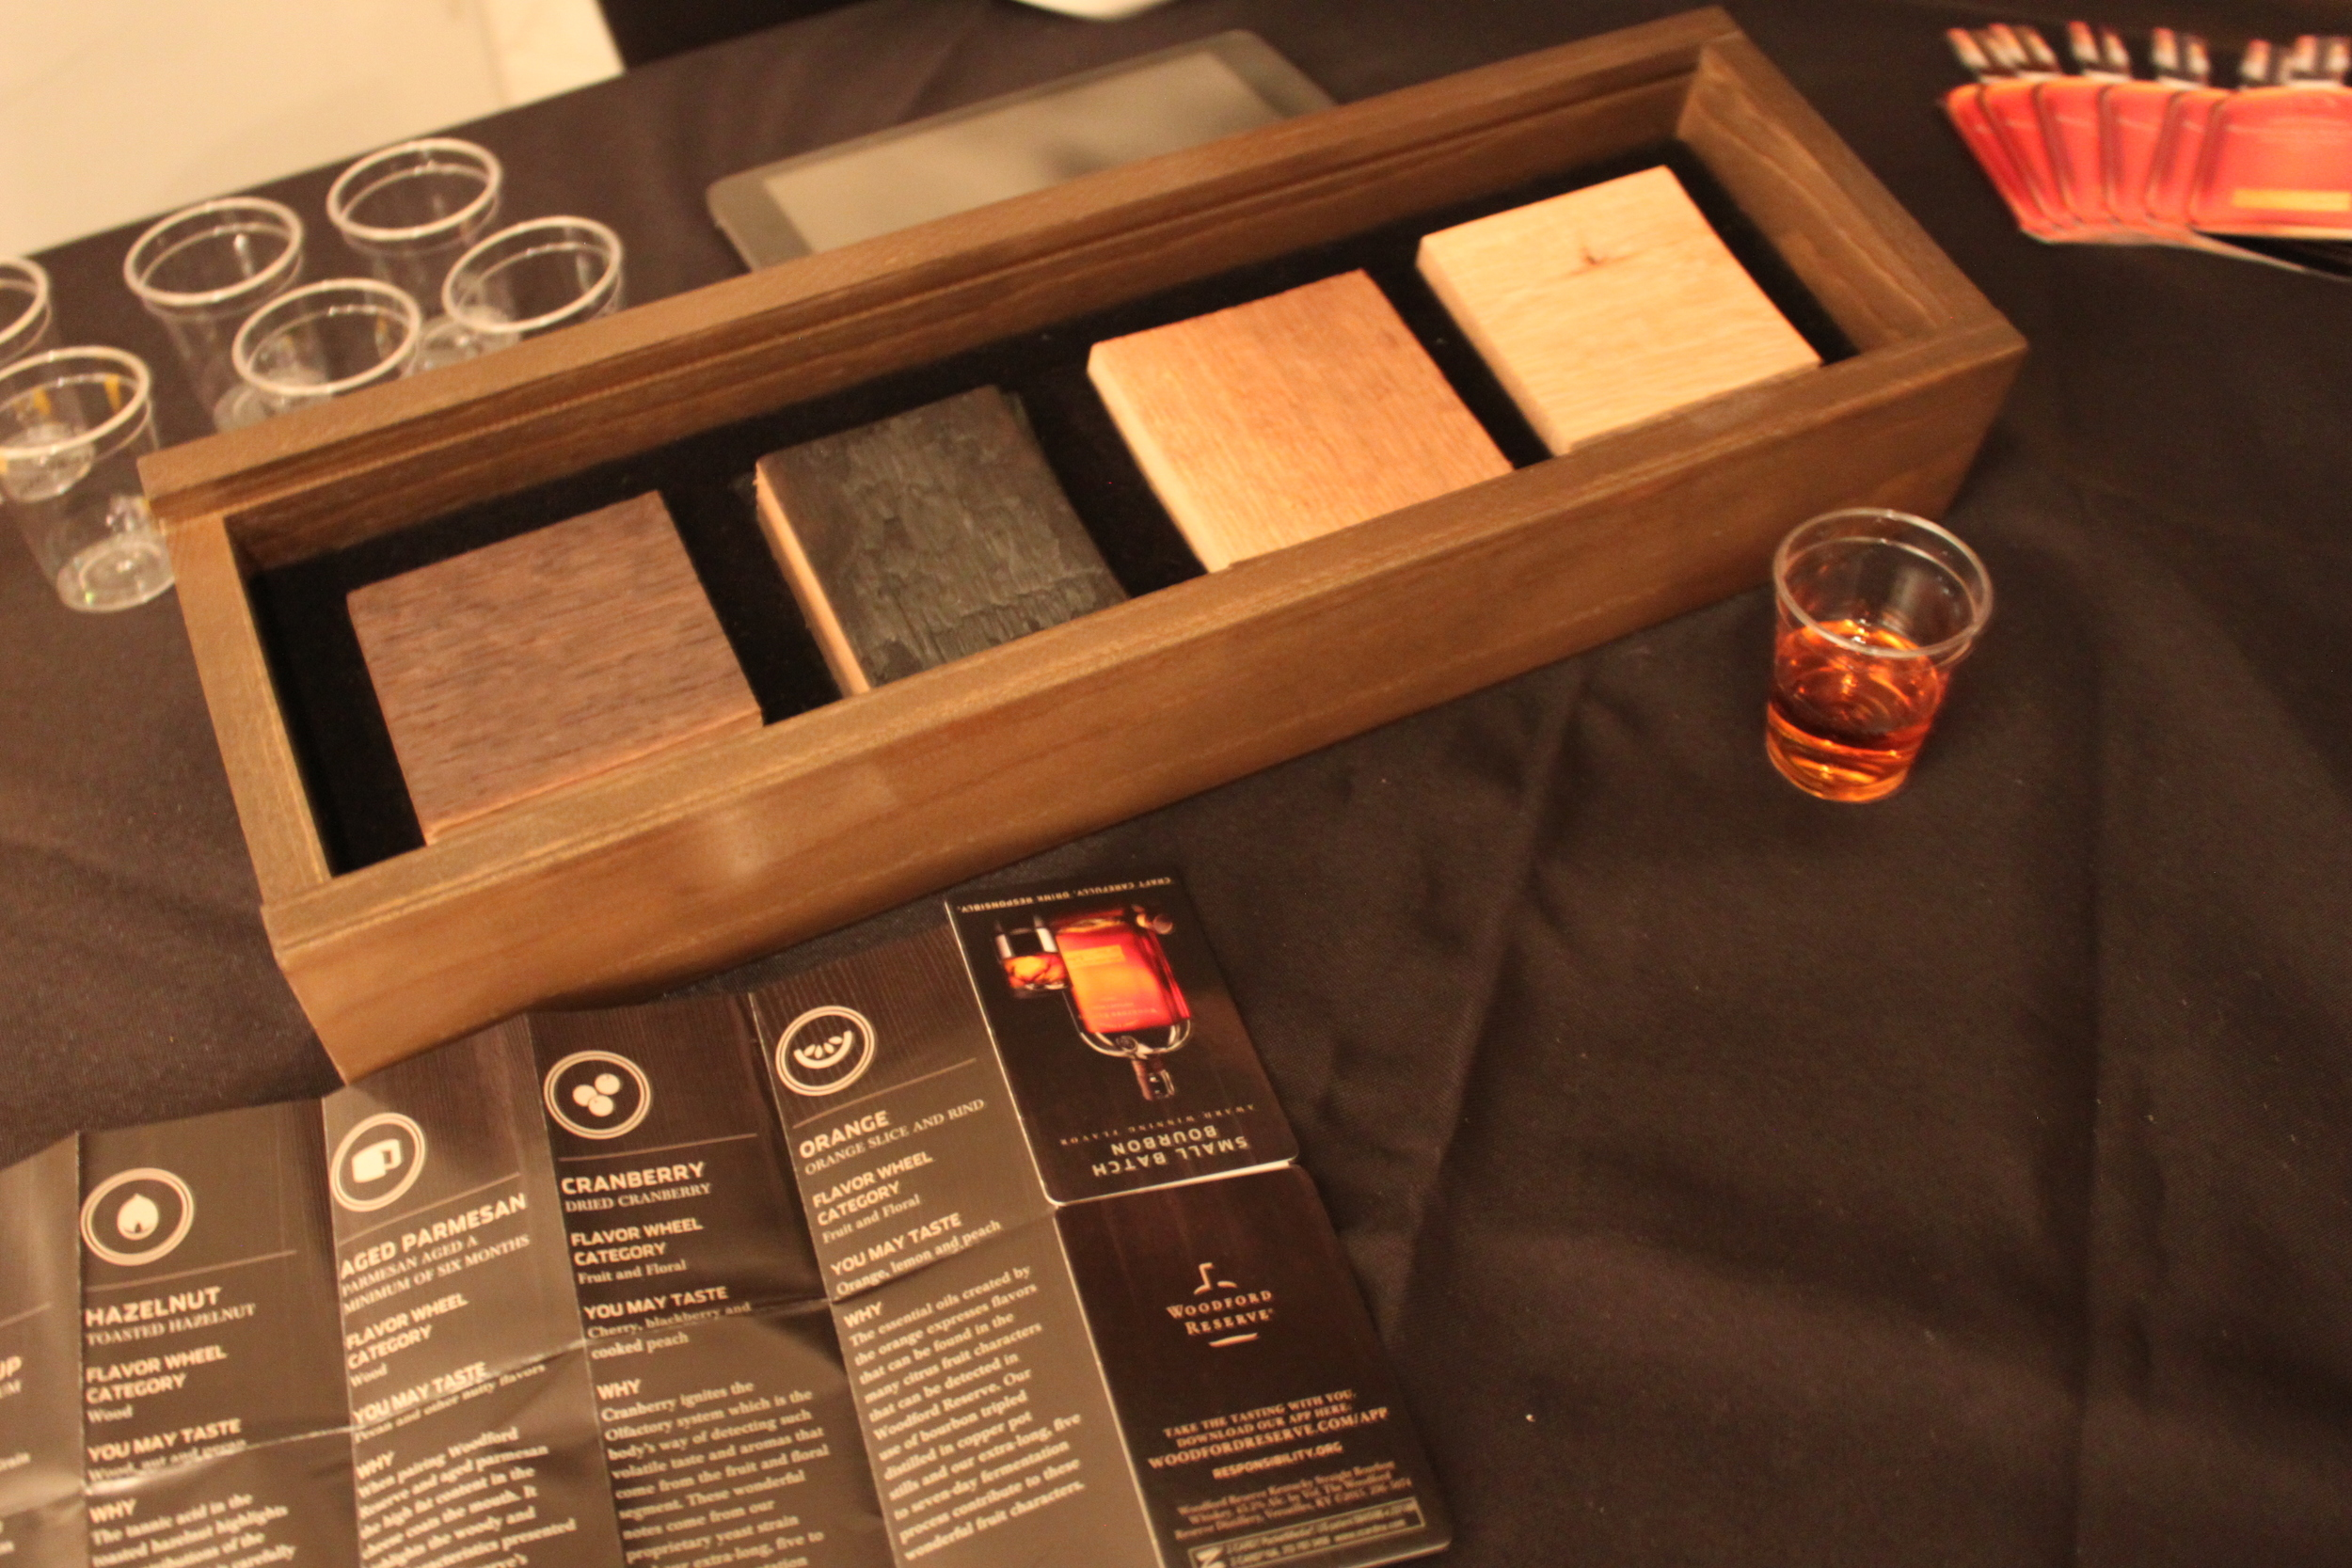 Woodford Reserve tasting bar — and a guide for doing an at-home tasting with friends: anyone interested in joining me?